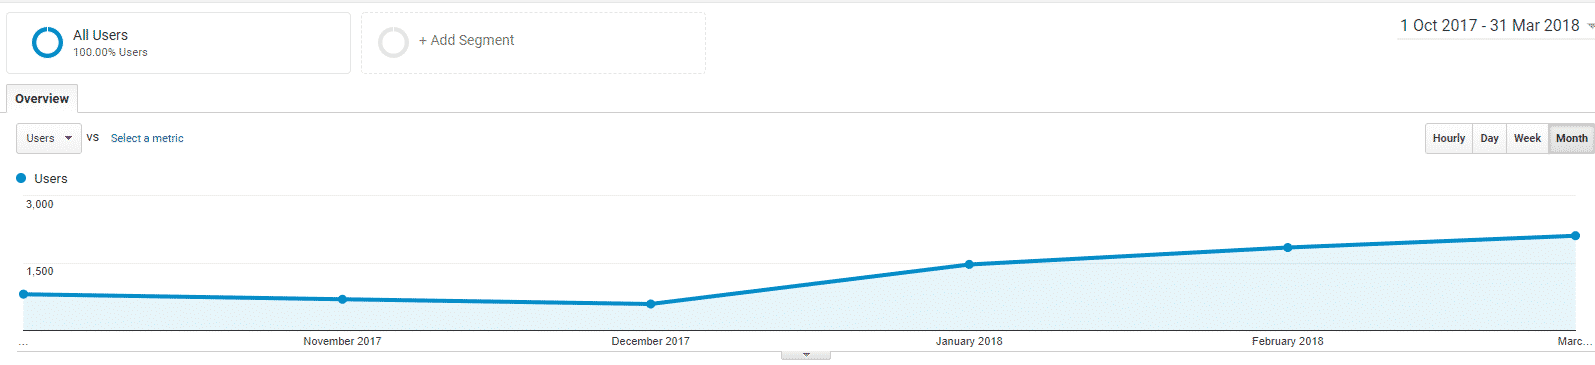 SEO Traffic Increase Graph - Google Analytics